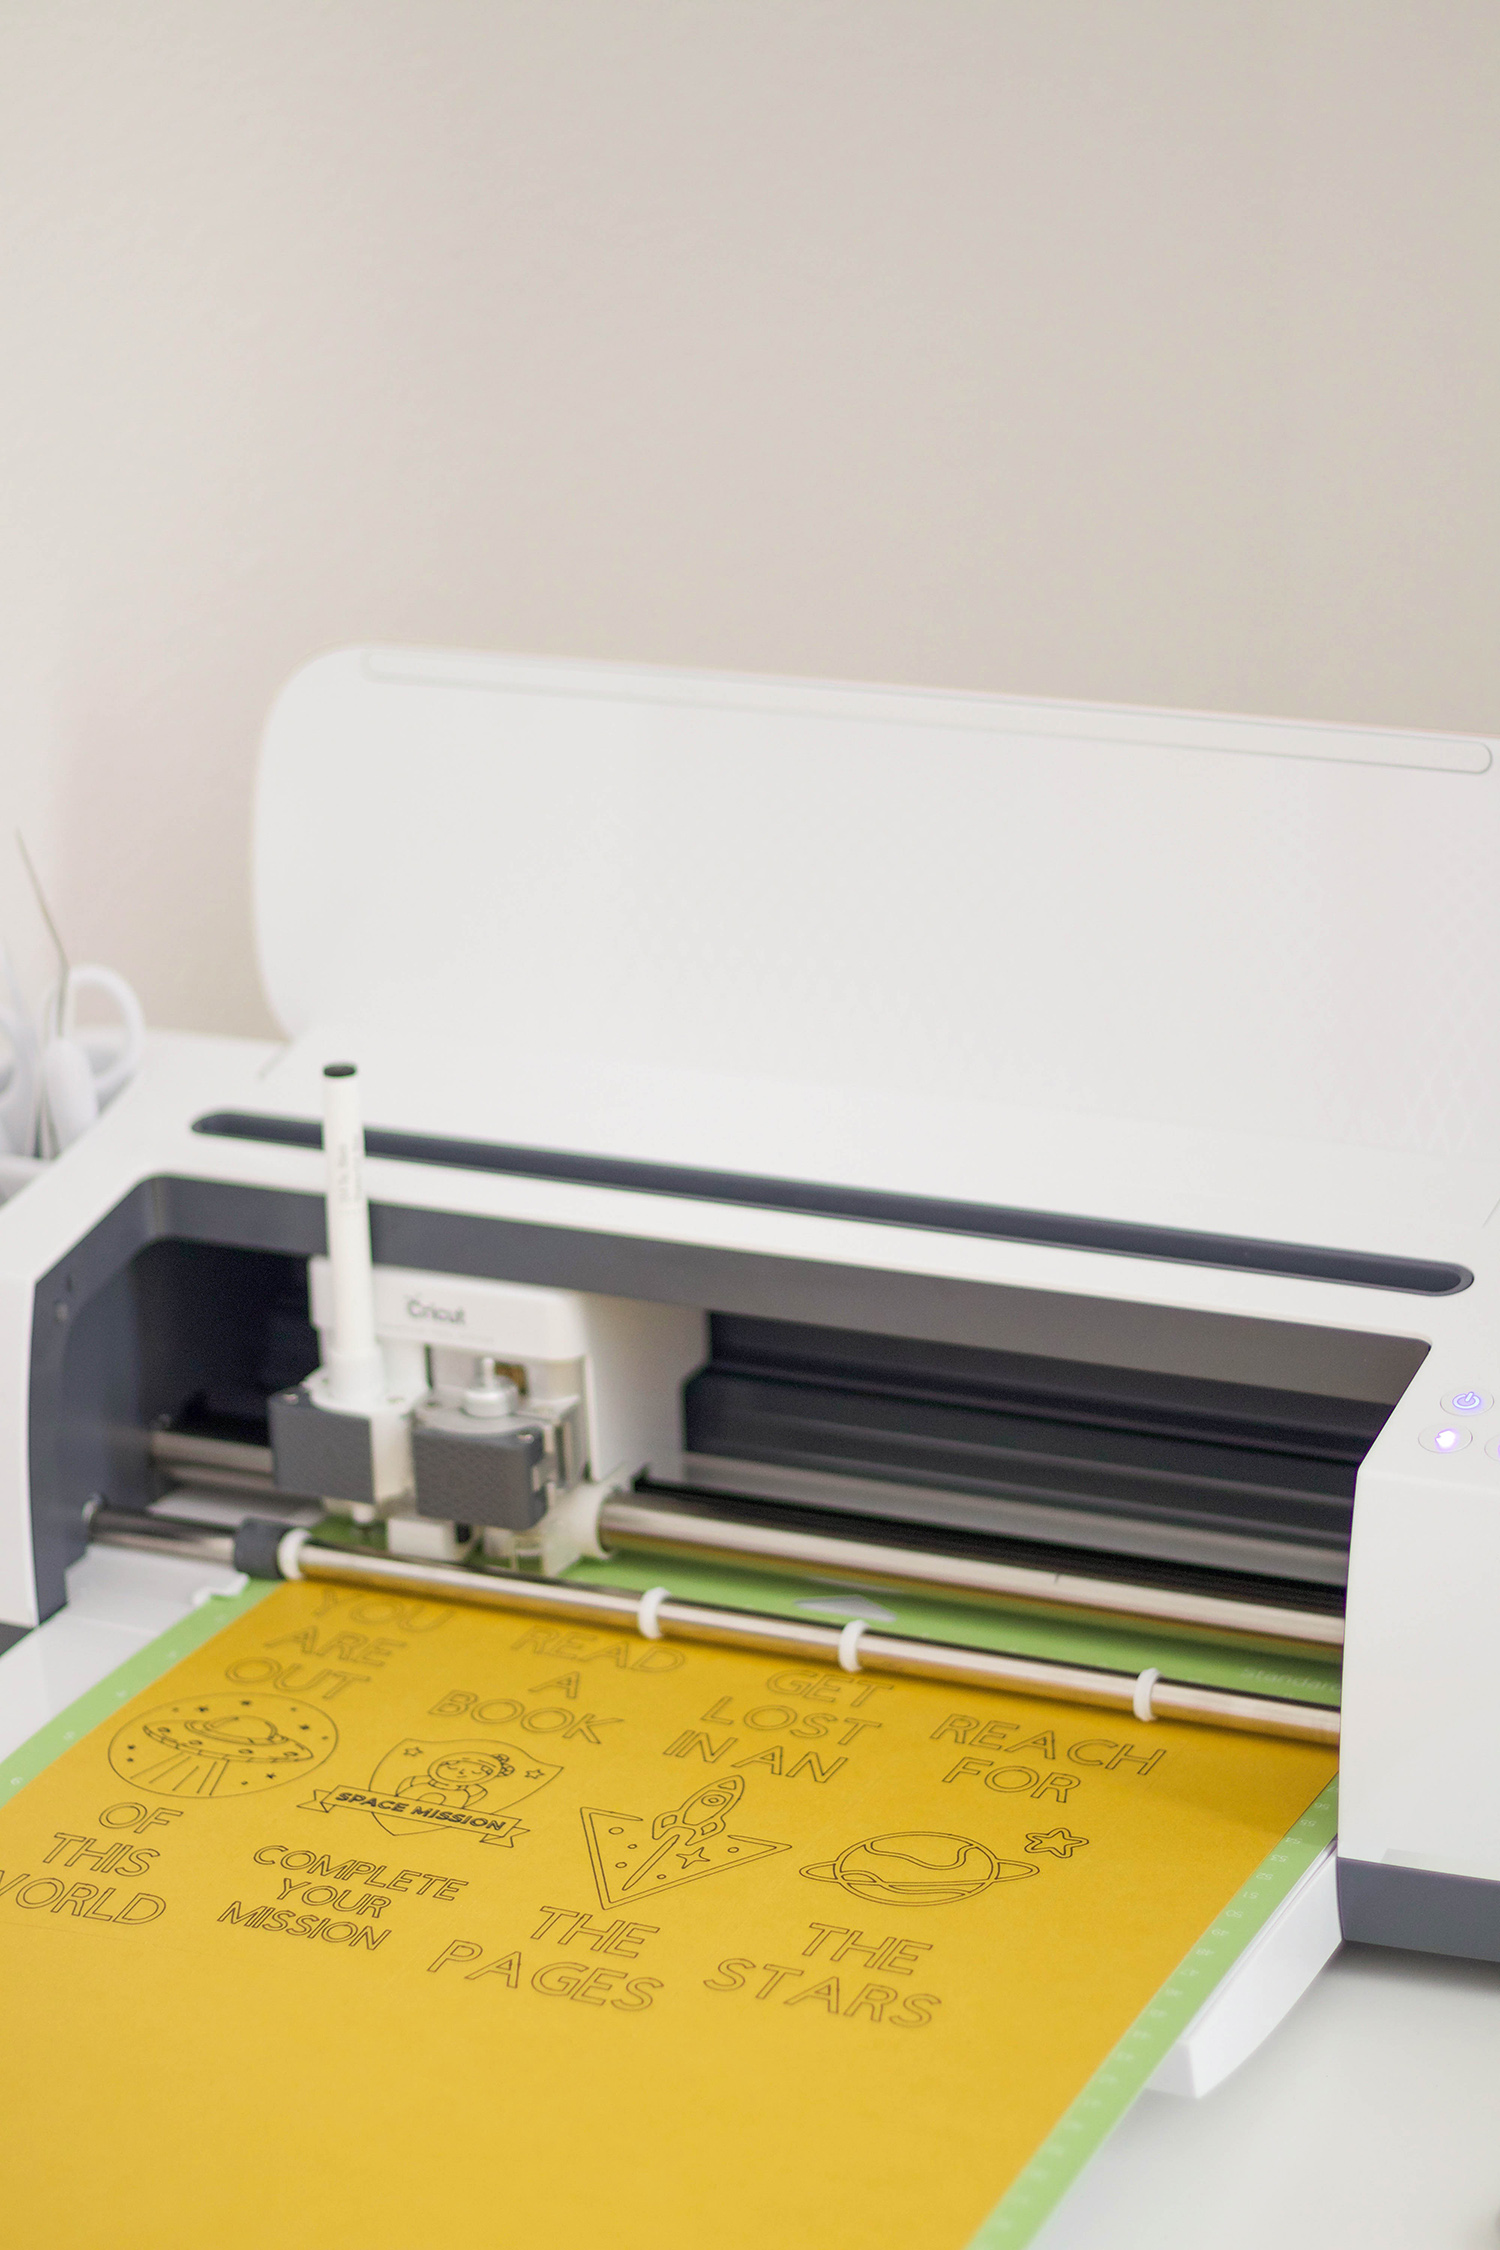 cricut maker project cutting